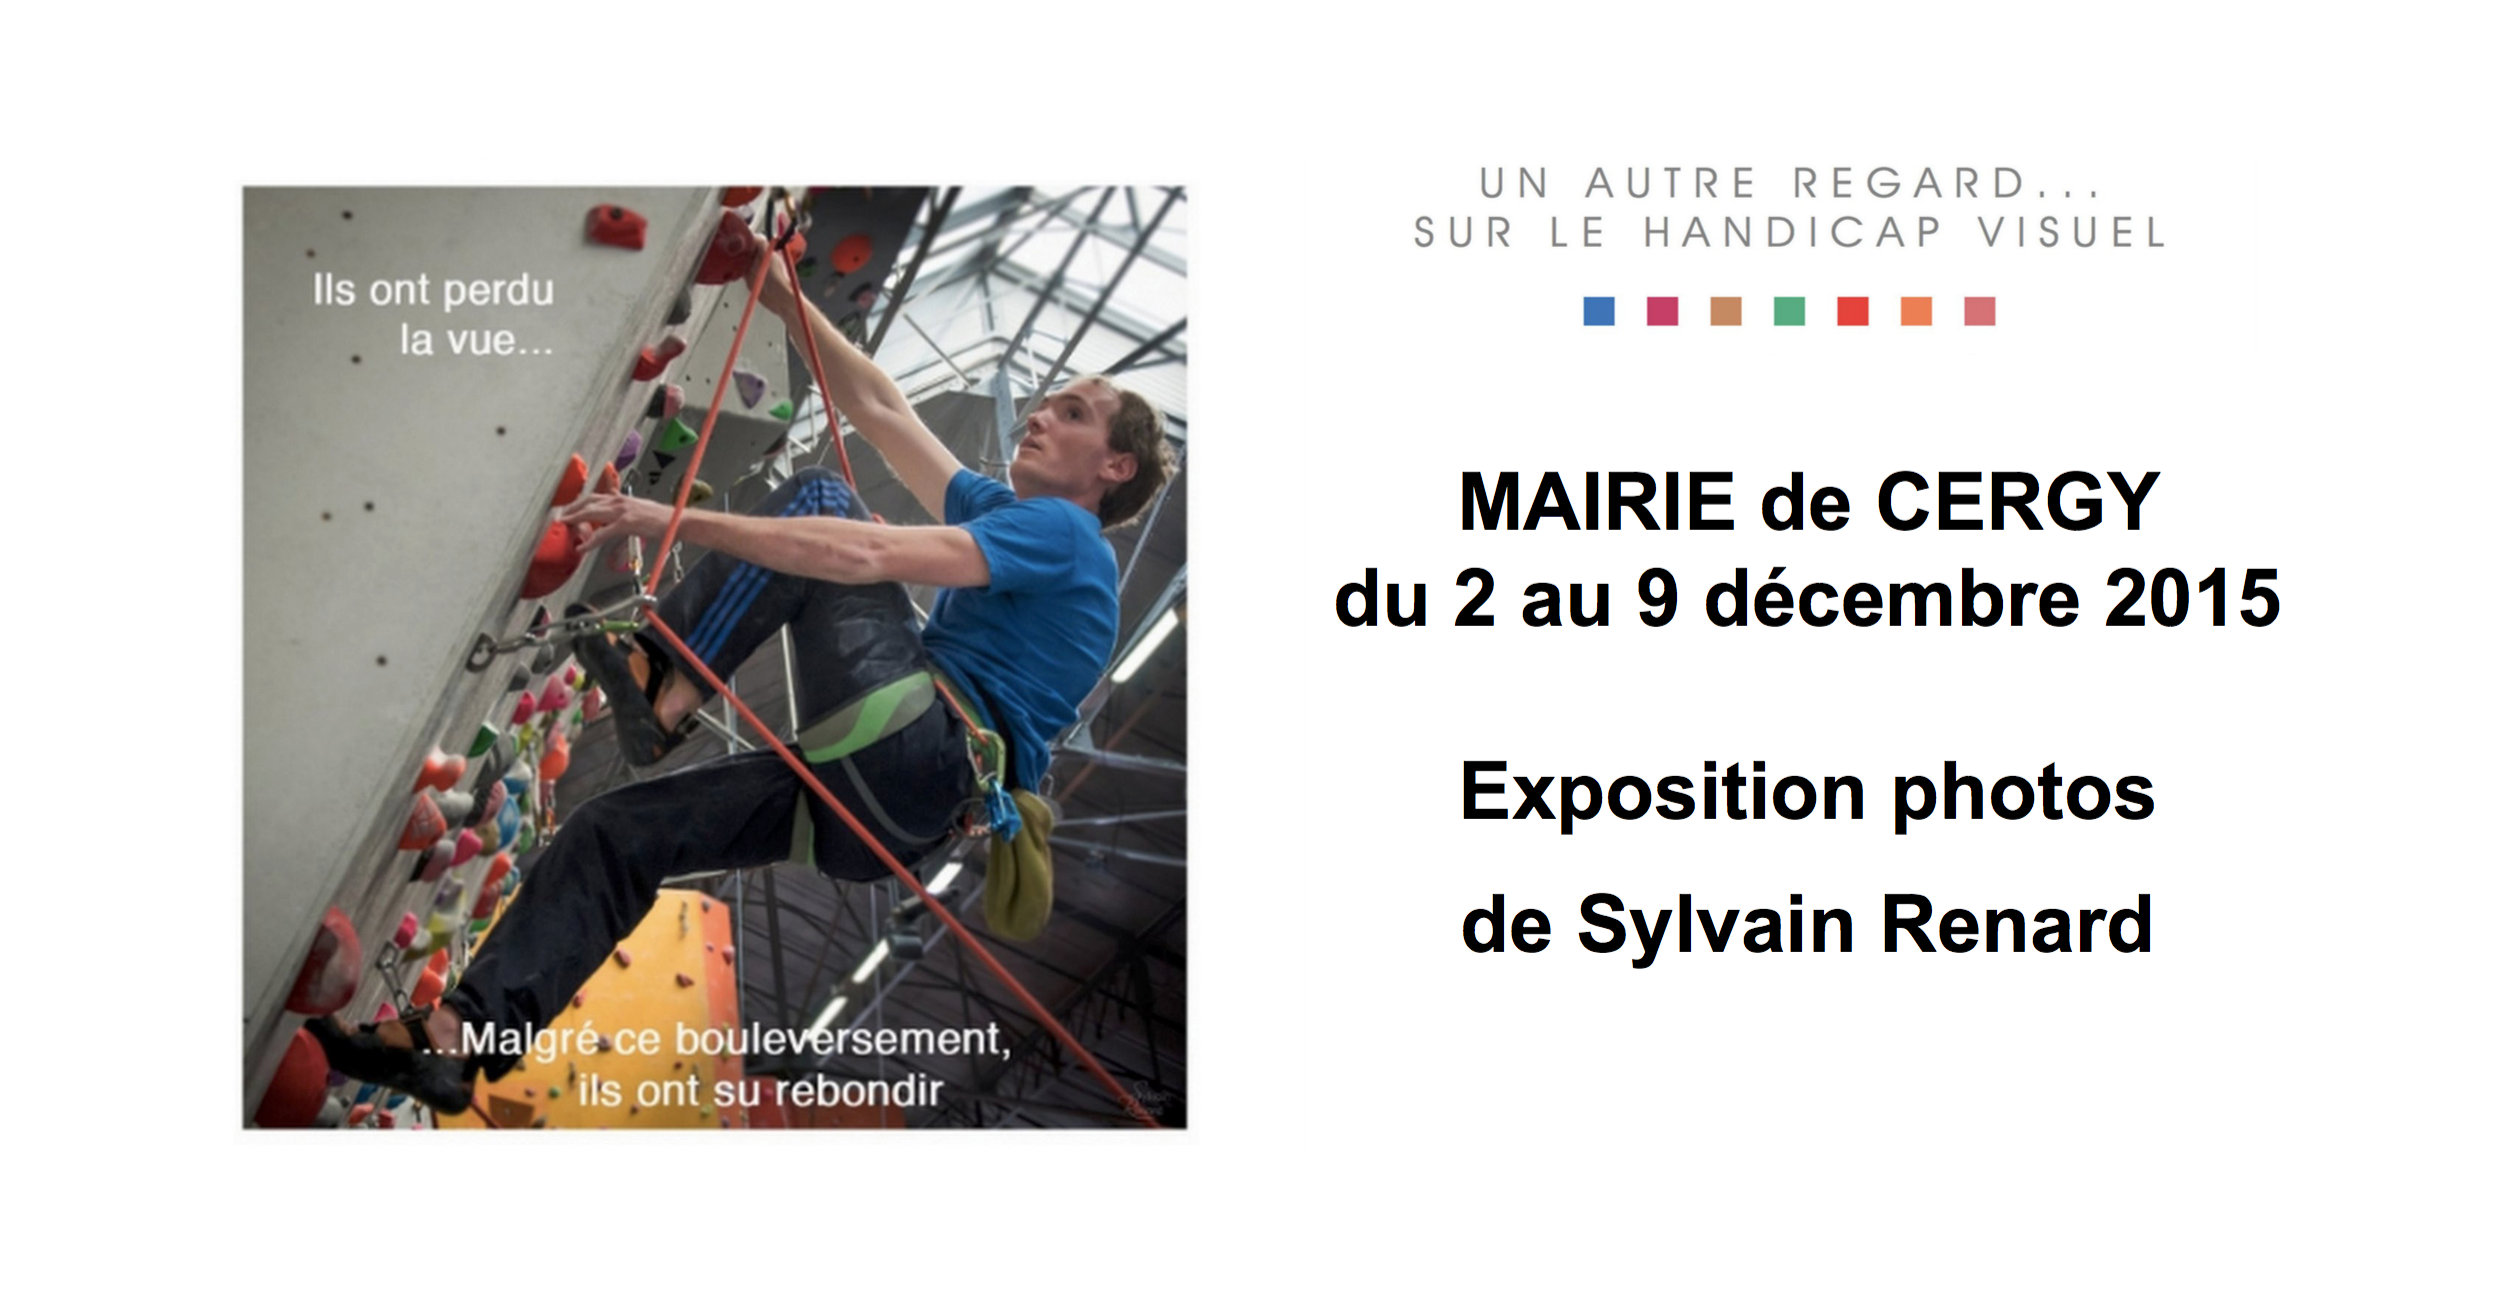 Expo photos à Cergy du 2 au 9  Décembre 2015